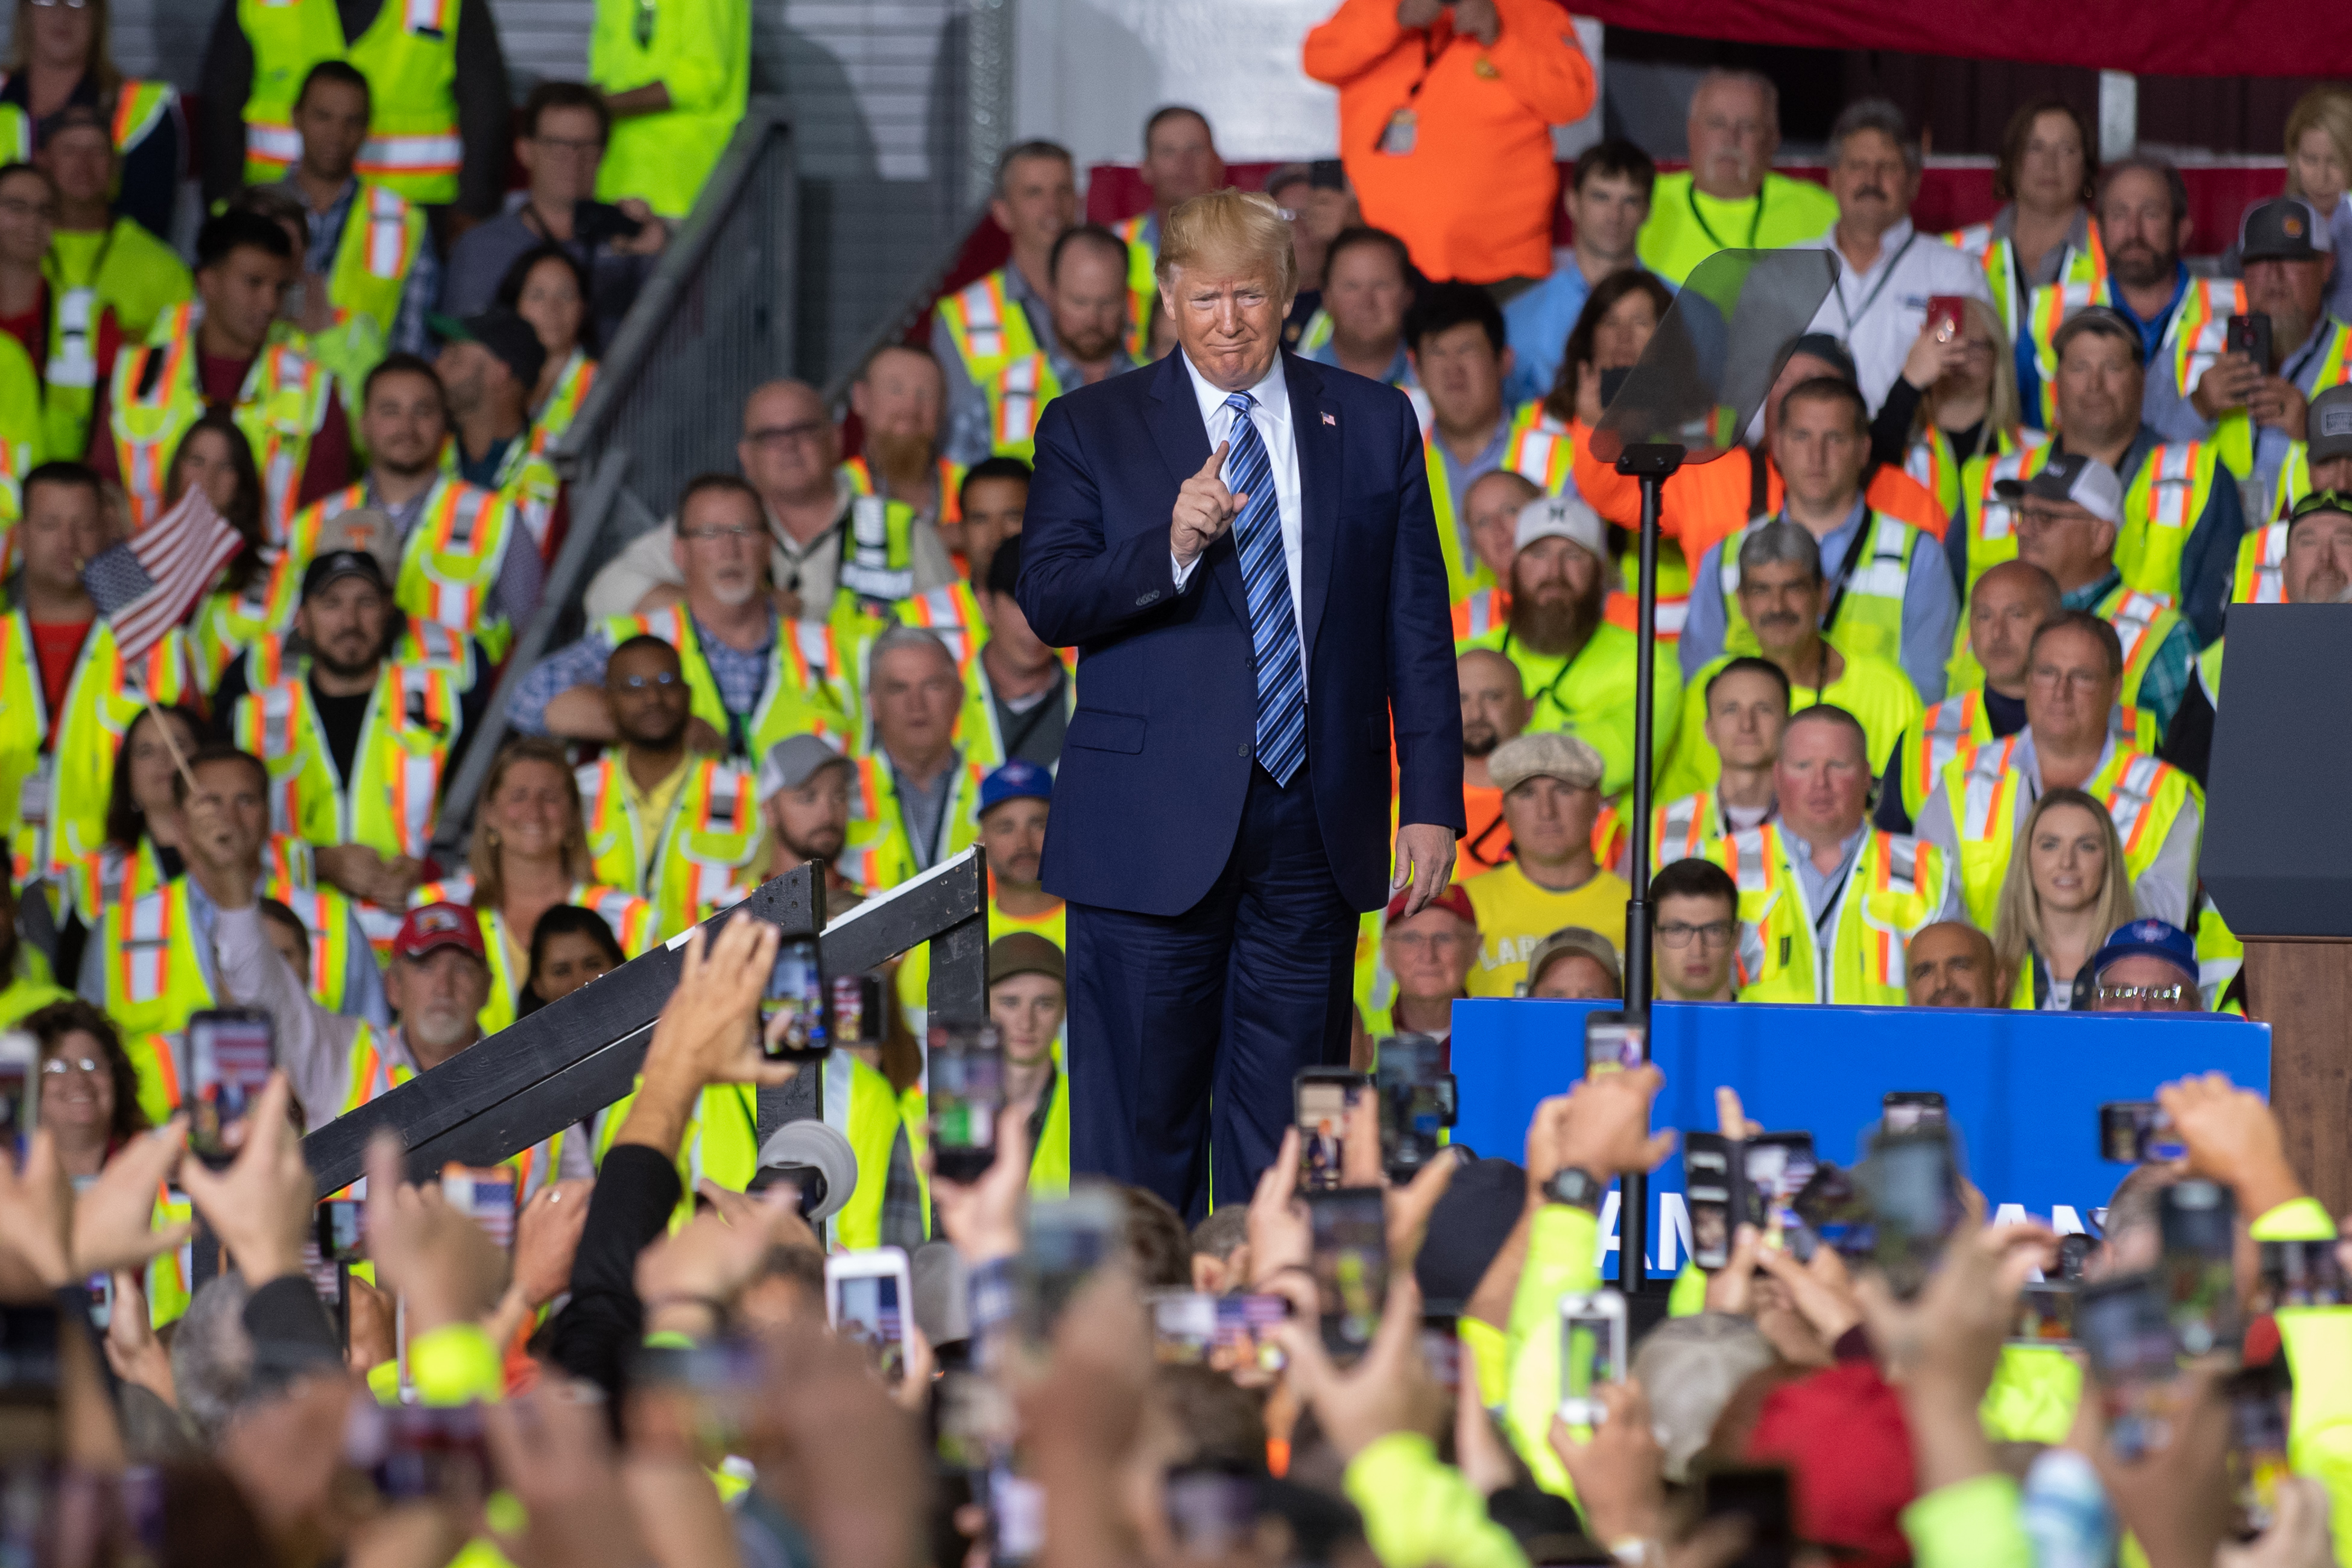 MONACA, PA - AUGUST 13: US President Donald Trump speaks to 5000 contractors at the Shell Chemicals Petrochemical Complex on August 13, 2019 in Monaca, Pennsylvania. President Donald Trump delivered a speech on the economy, and focused on manufacturing and energy sector jobs. (Photo by Jeff Swensen/Getty Images)